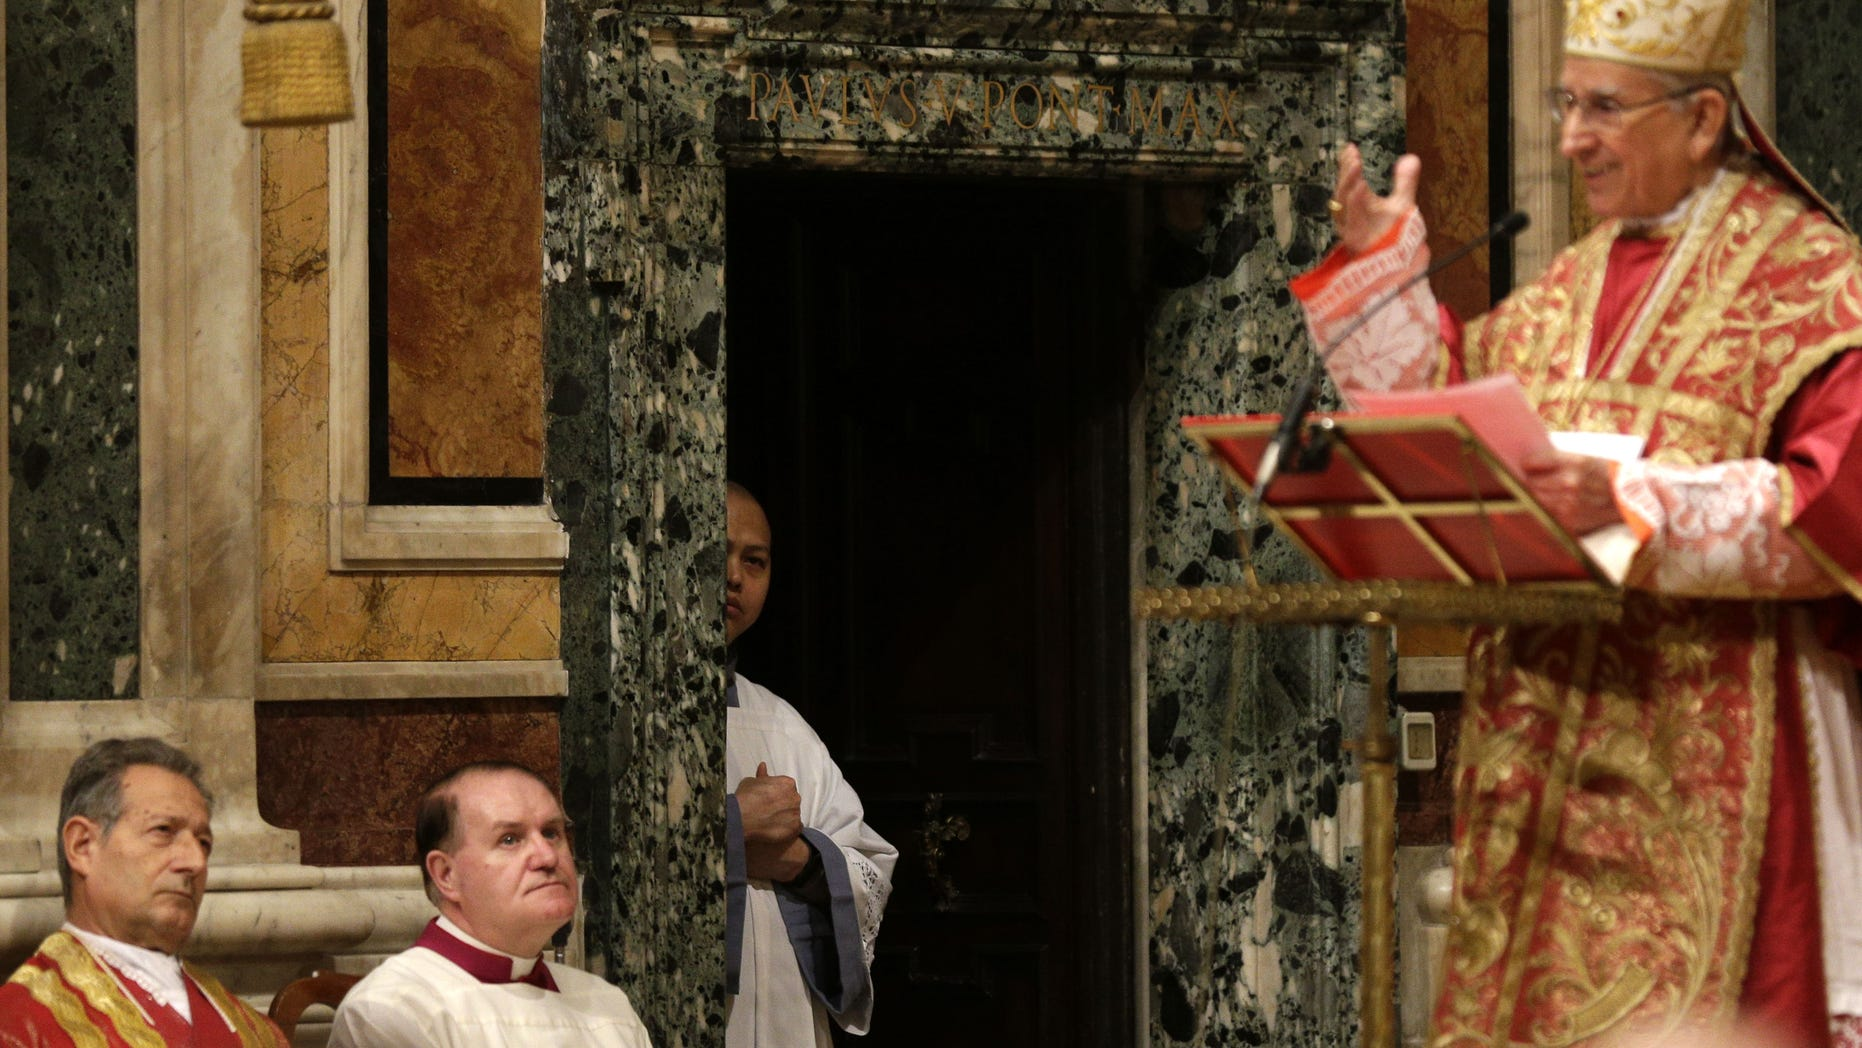 Prelates follow a mass for the election of the new pope celebrated by Cardinal Dario Castrillon Hoyos, right, inside St. Mary Major Basilica, in Rome, Friday, March 8, 2013. Cardinals have set Tuesday as the start date for the conclave to elect the next pope, signaling that they were wrapping up a week of discussions about the problems of the church and who best among them might lead it. (AP Photo/Alessandra Tarantino)